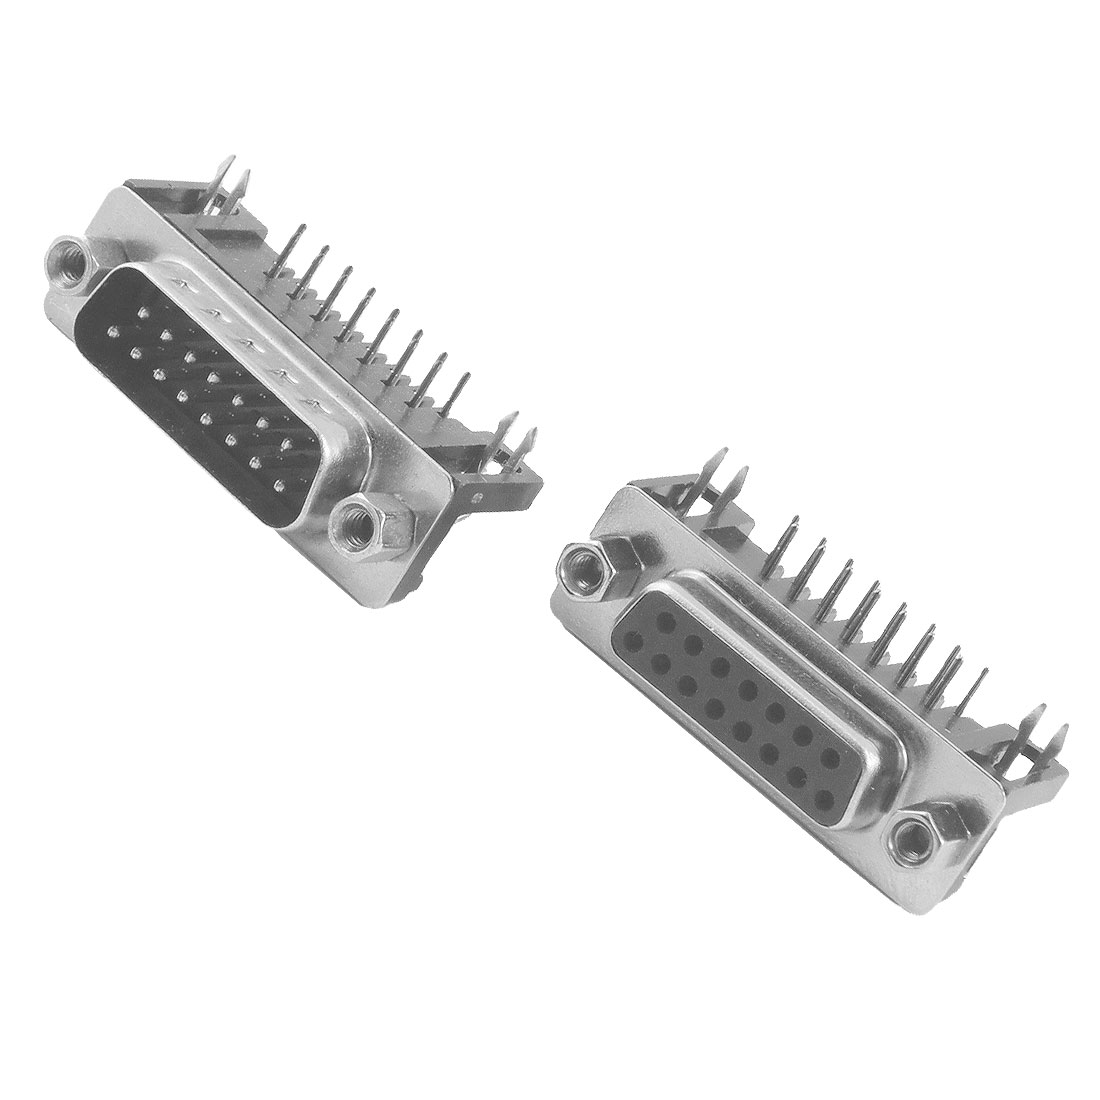 DB15 15 Pin Male + Female Right Angle D-sub PCB Mount Connectors 2 Pcs